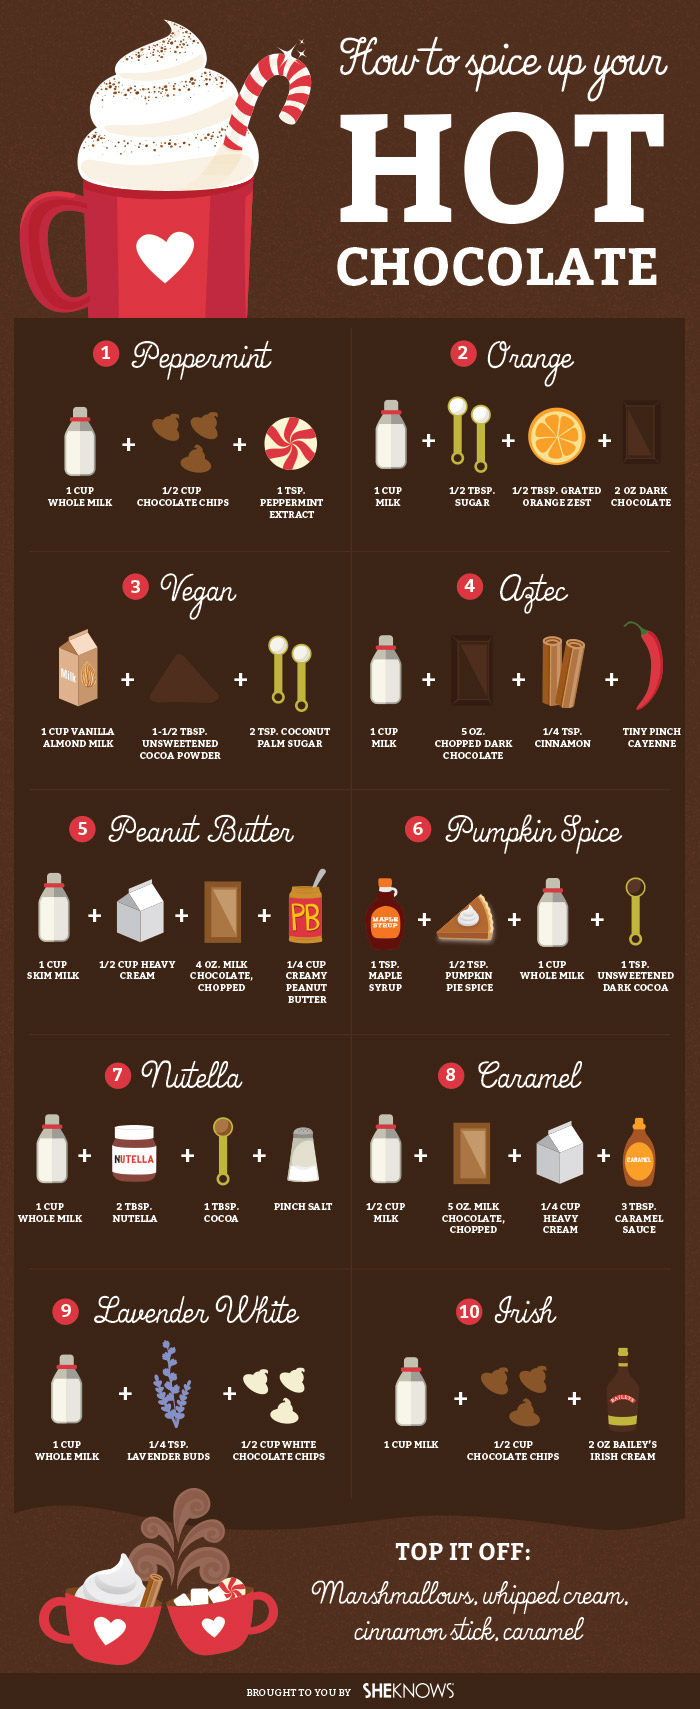 How To Spice Up Your Hot Chocolate On A Cold Winter Night